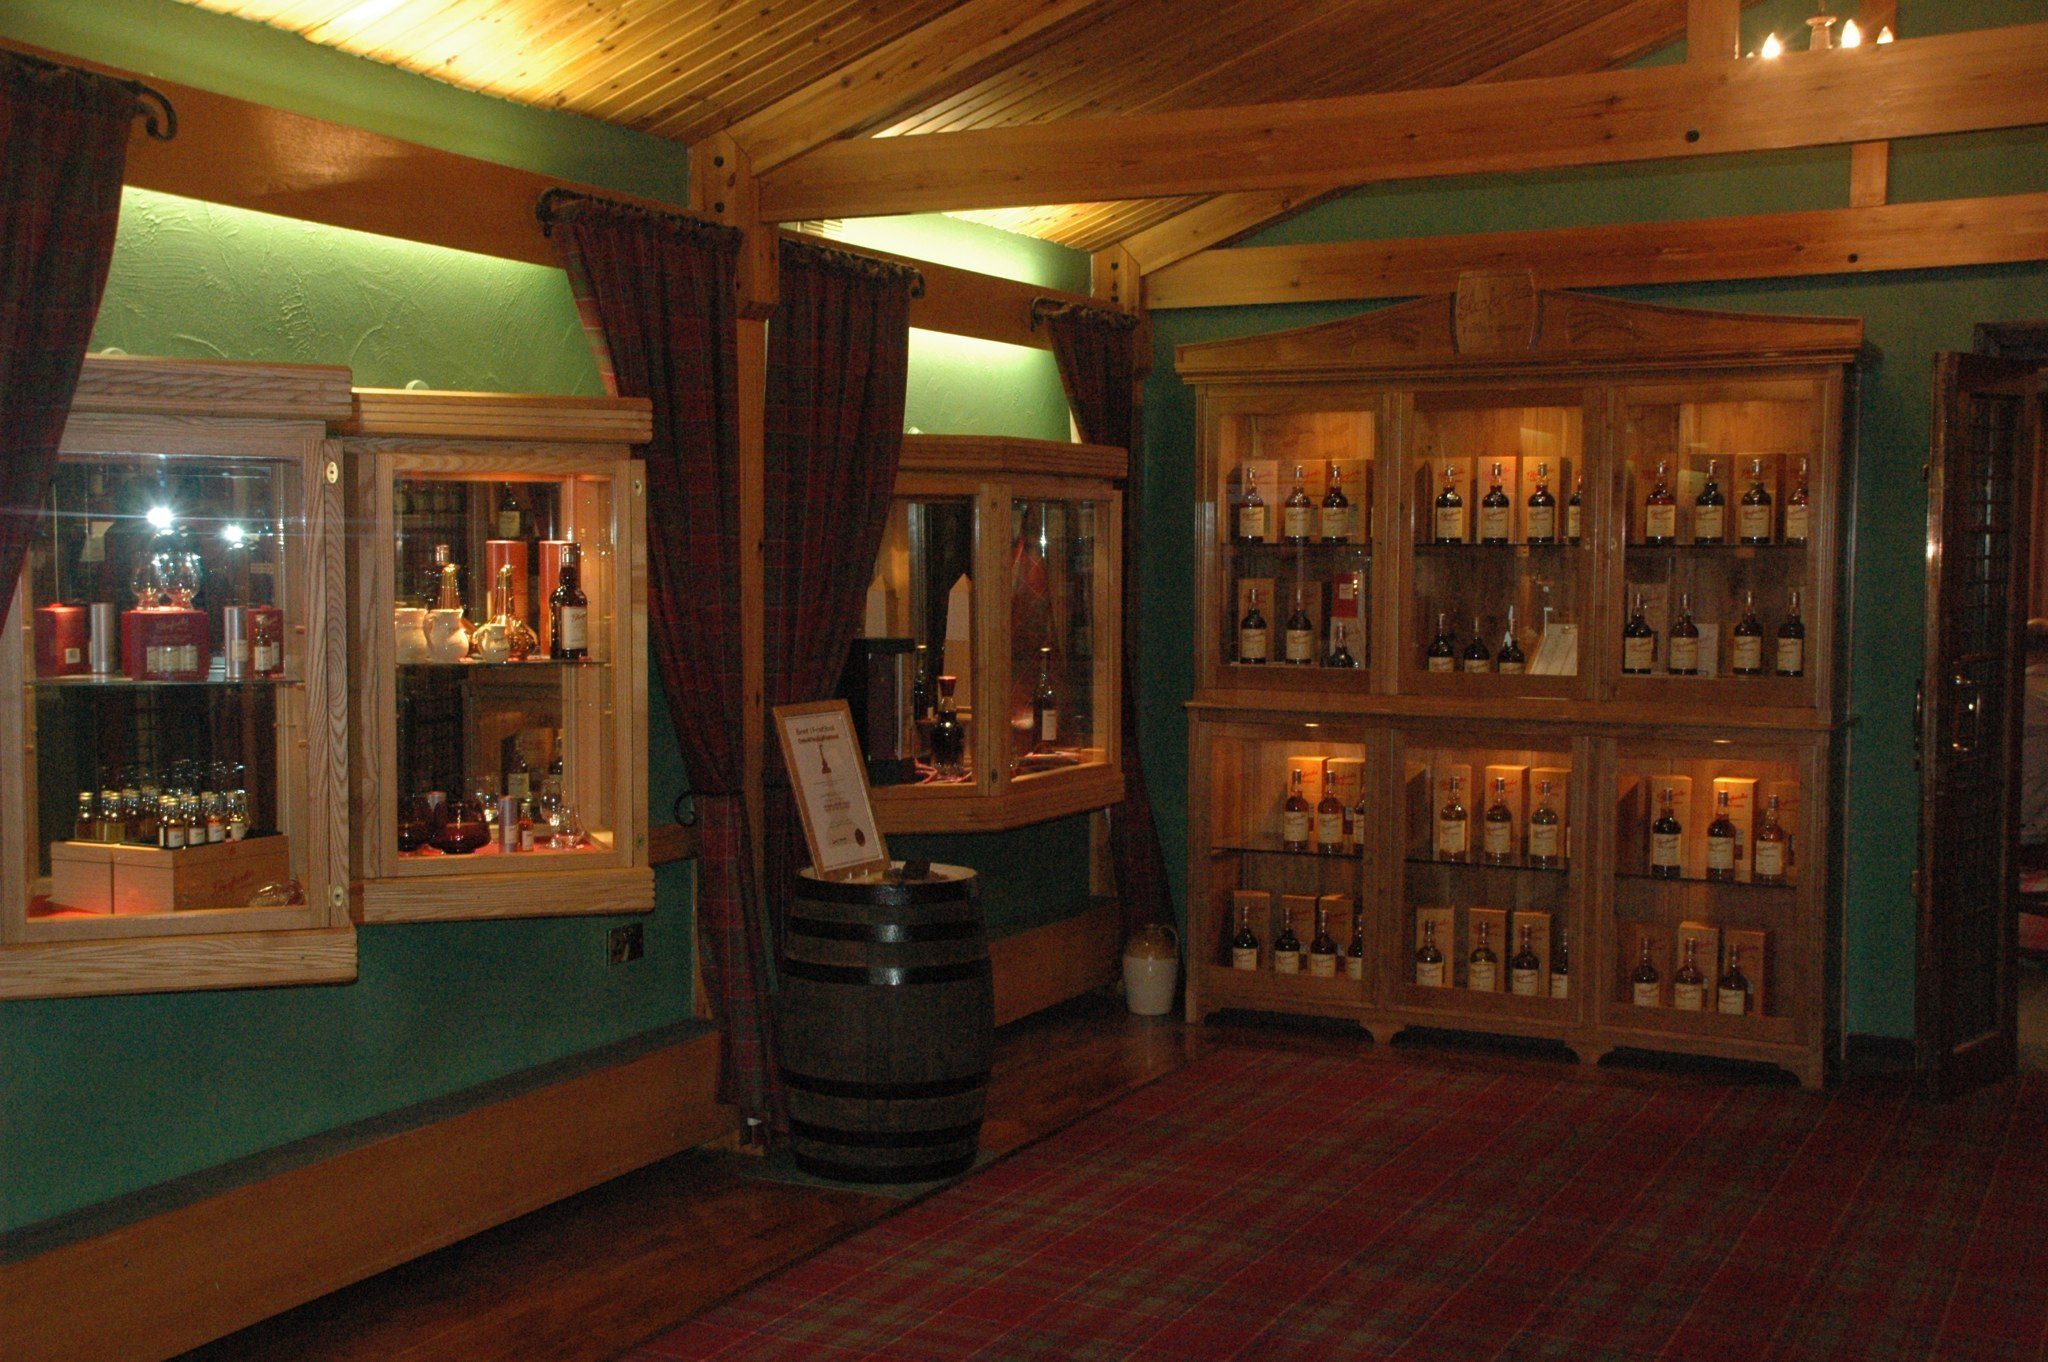 The Glenfarclas Visitor Center